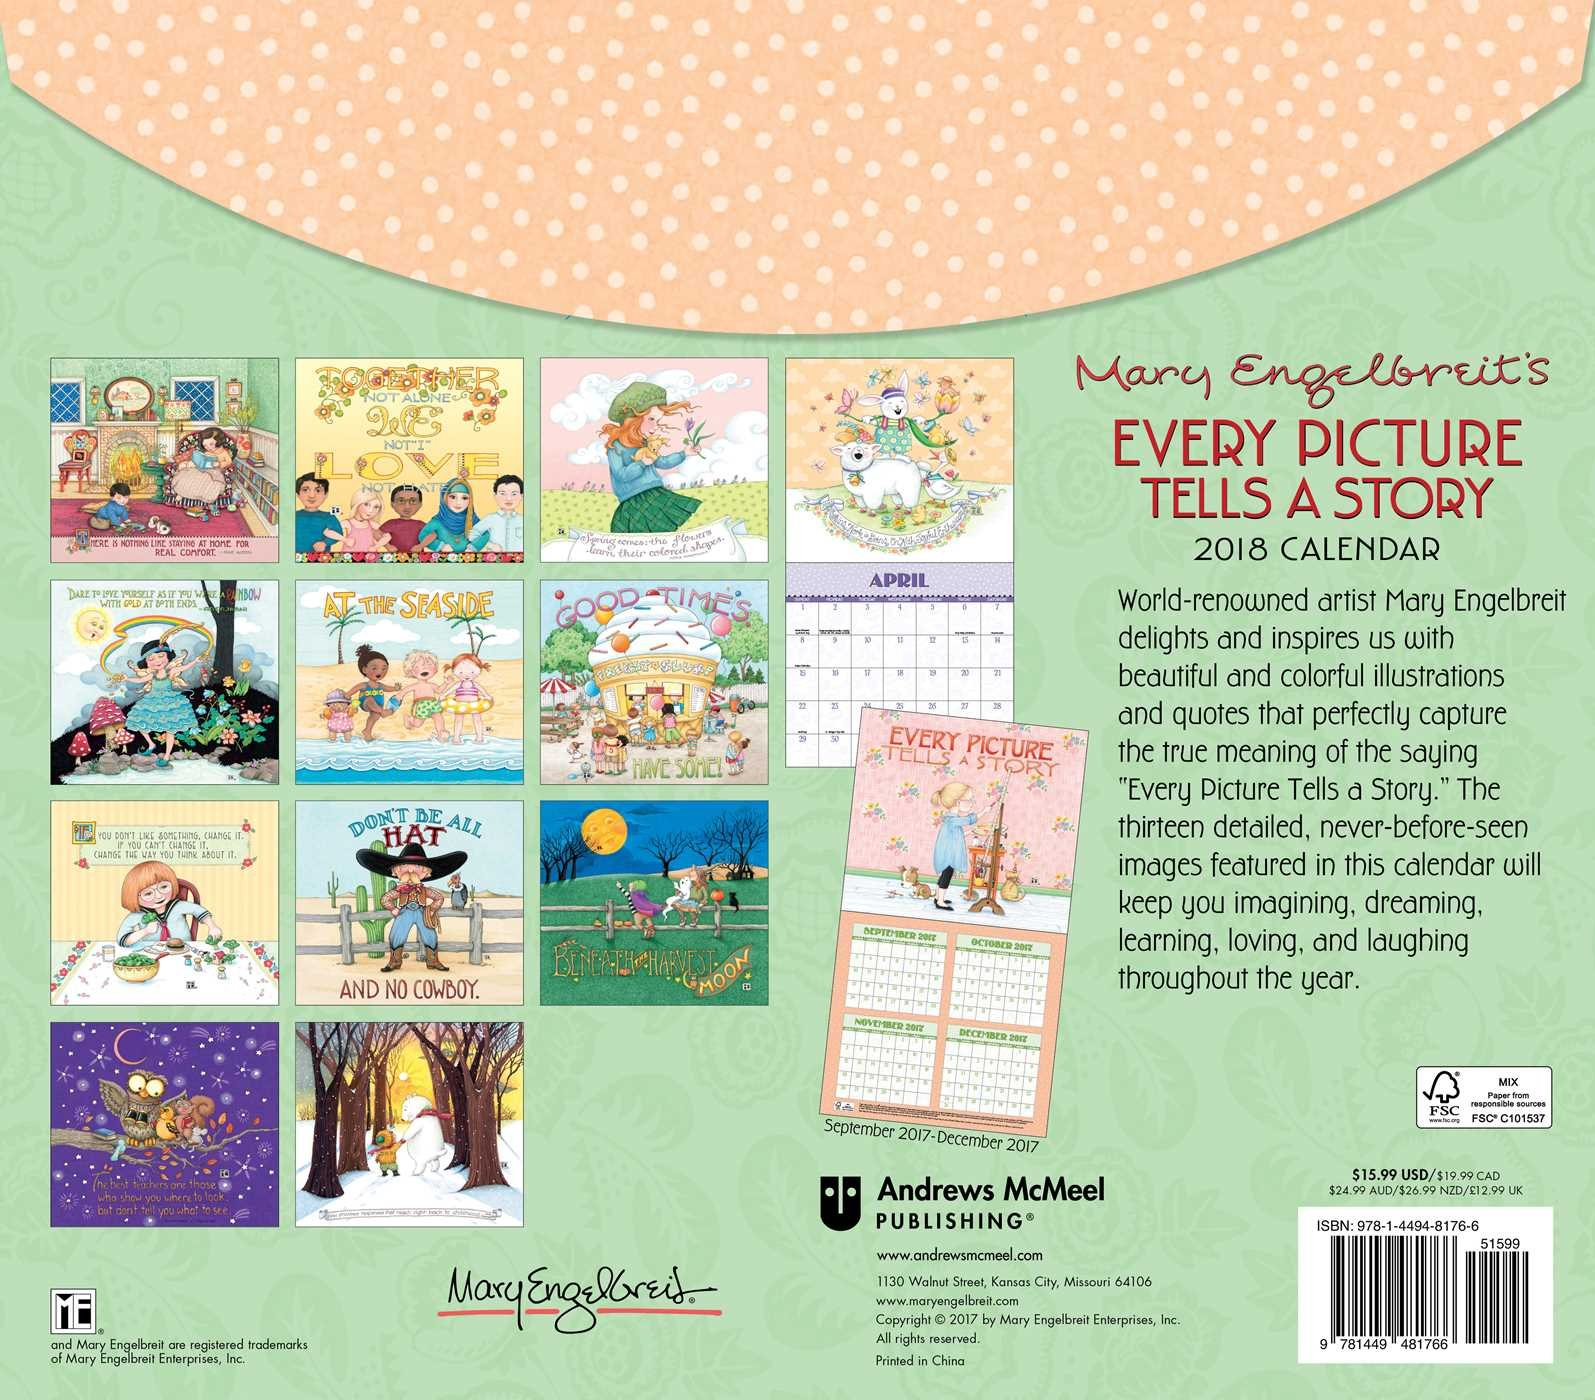 Mary engelbreit 2018 deluxe wall calendar every picture tells a mary engelbreit 2018 deluxe wall calendar every picture tells a story mary engelbreit 9781449481766 amazon books bookmarktalkfo Image collections